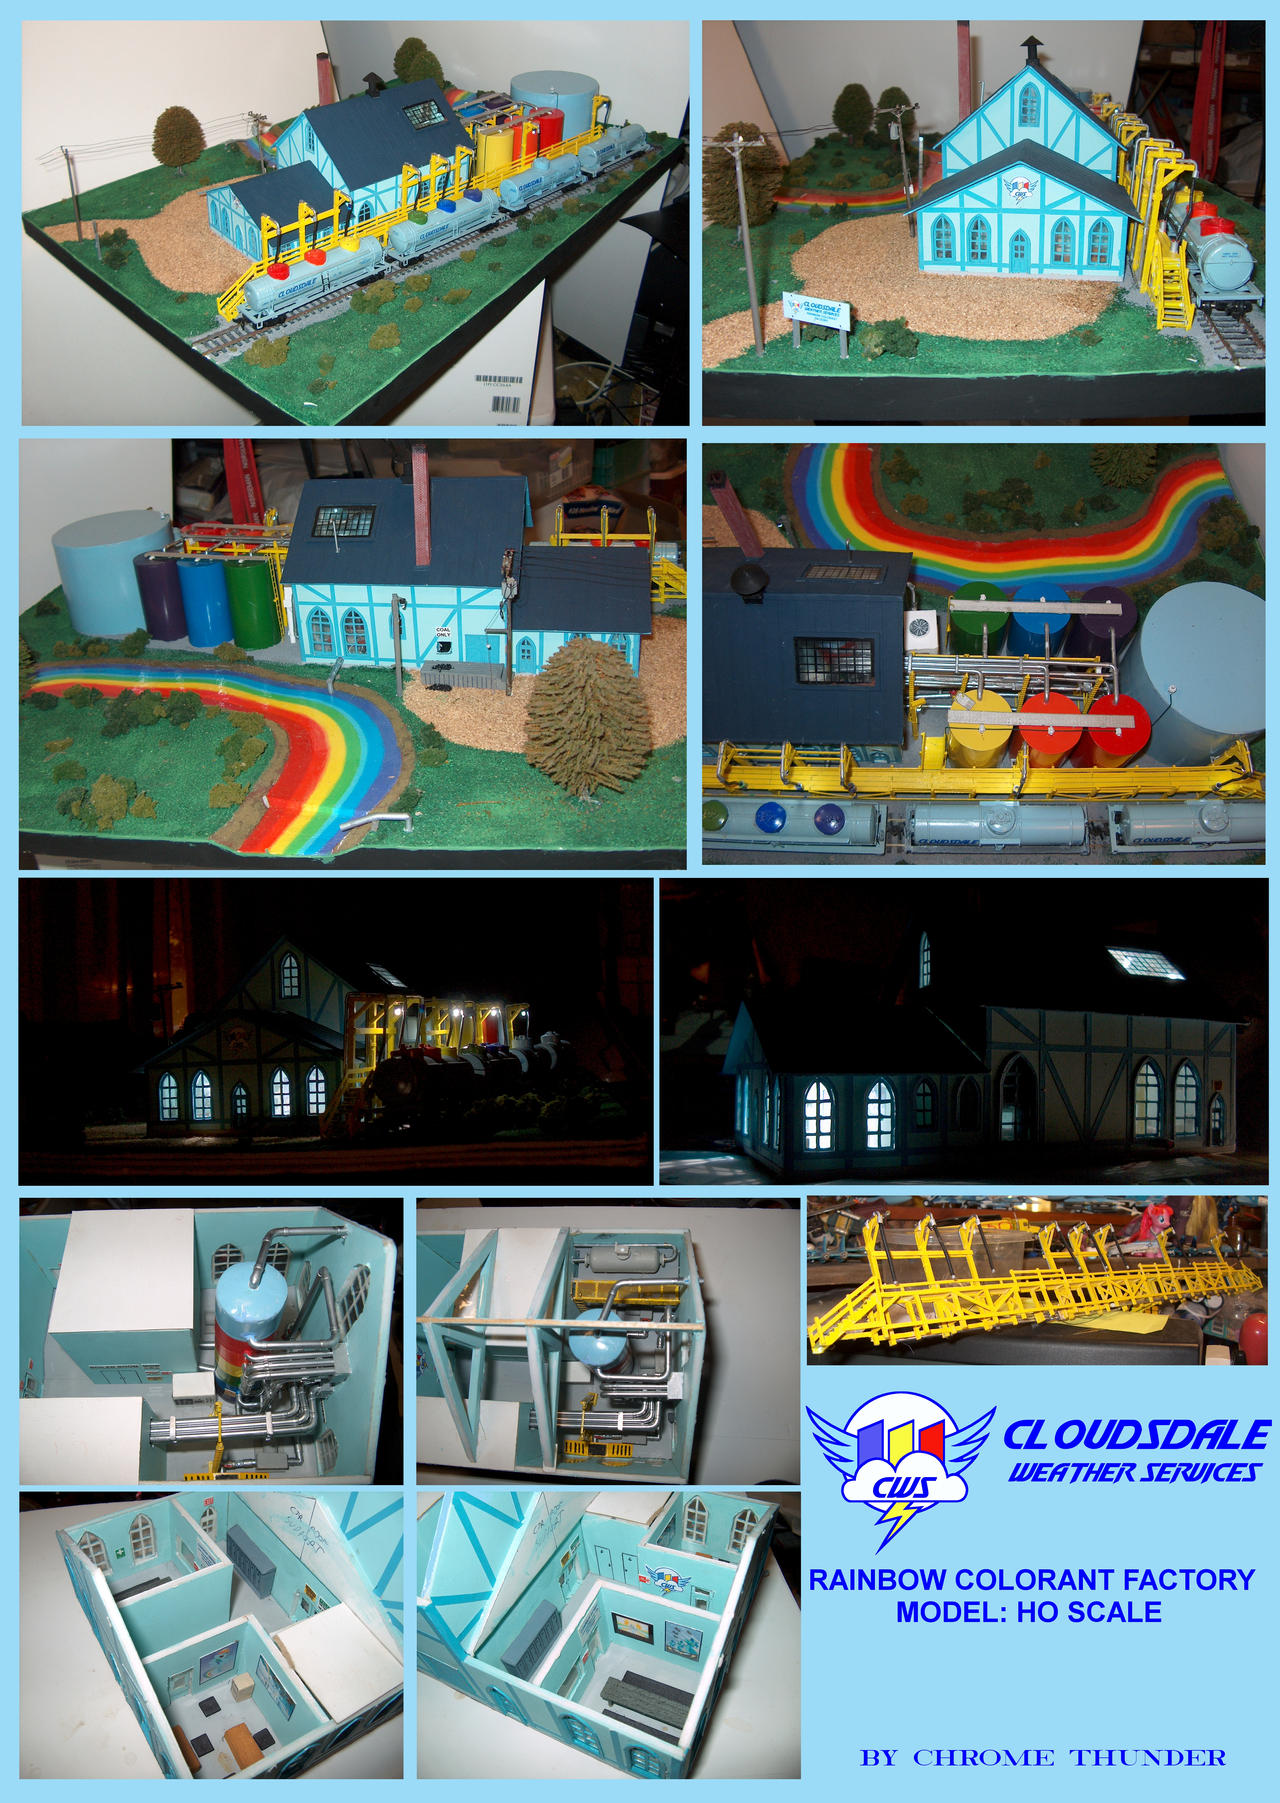 Rainbow Colorant Factory Model: HO Scale